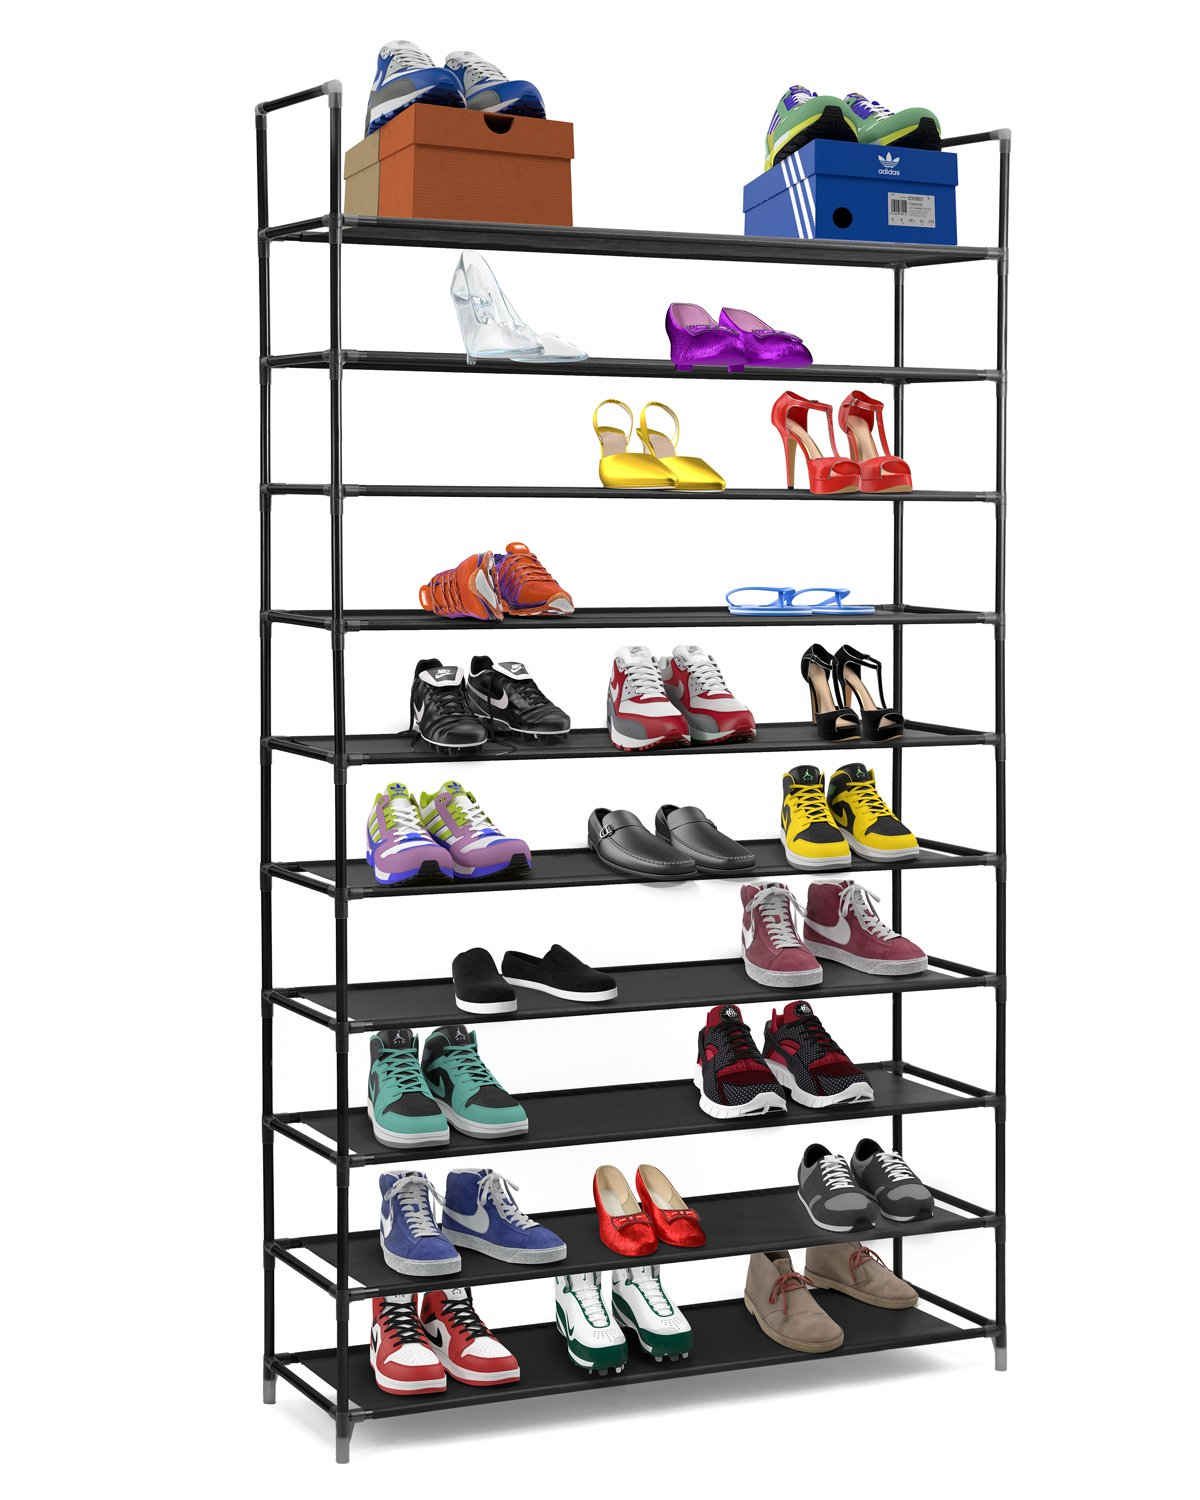 Com Halter 10 Tier Stainless Steel Shoe Rack Storage Stackable Shelves Holds 50 Pairs Of Shoes 39 125 X 11 69 5 Black Home